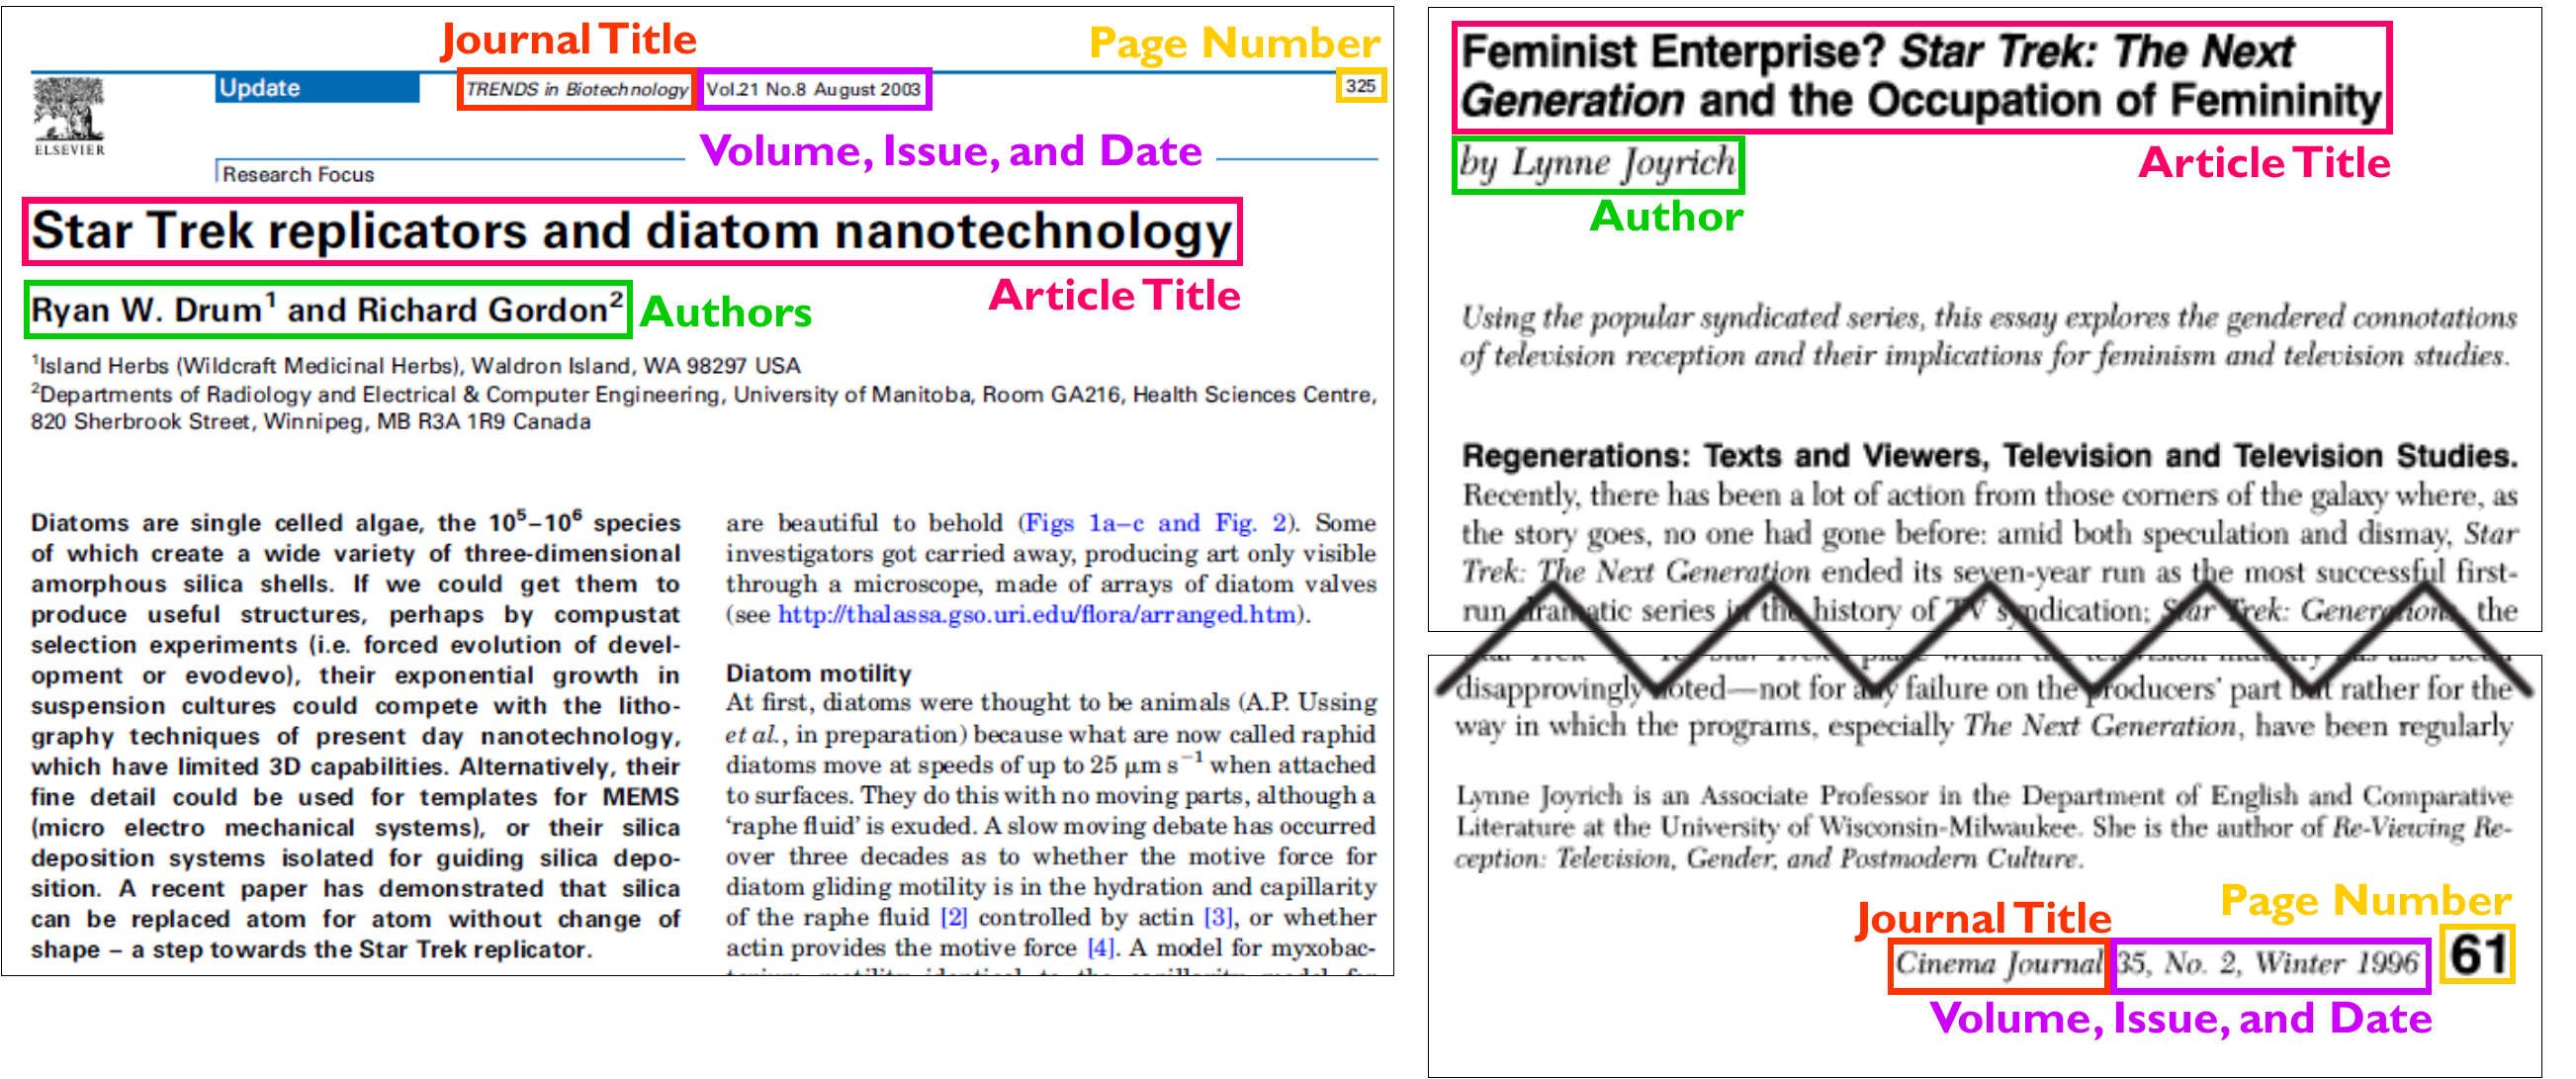 Articles with citation information highlighted